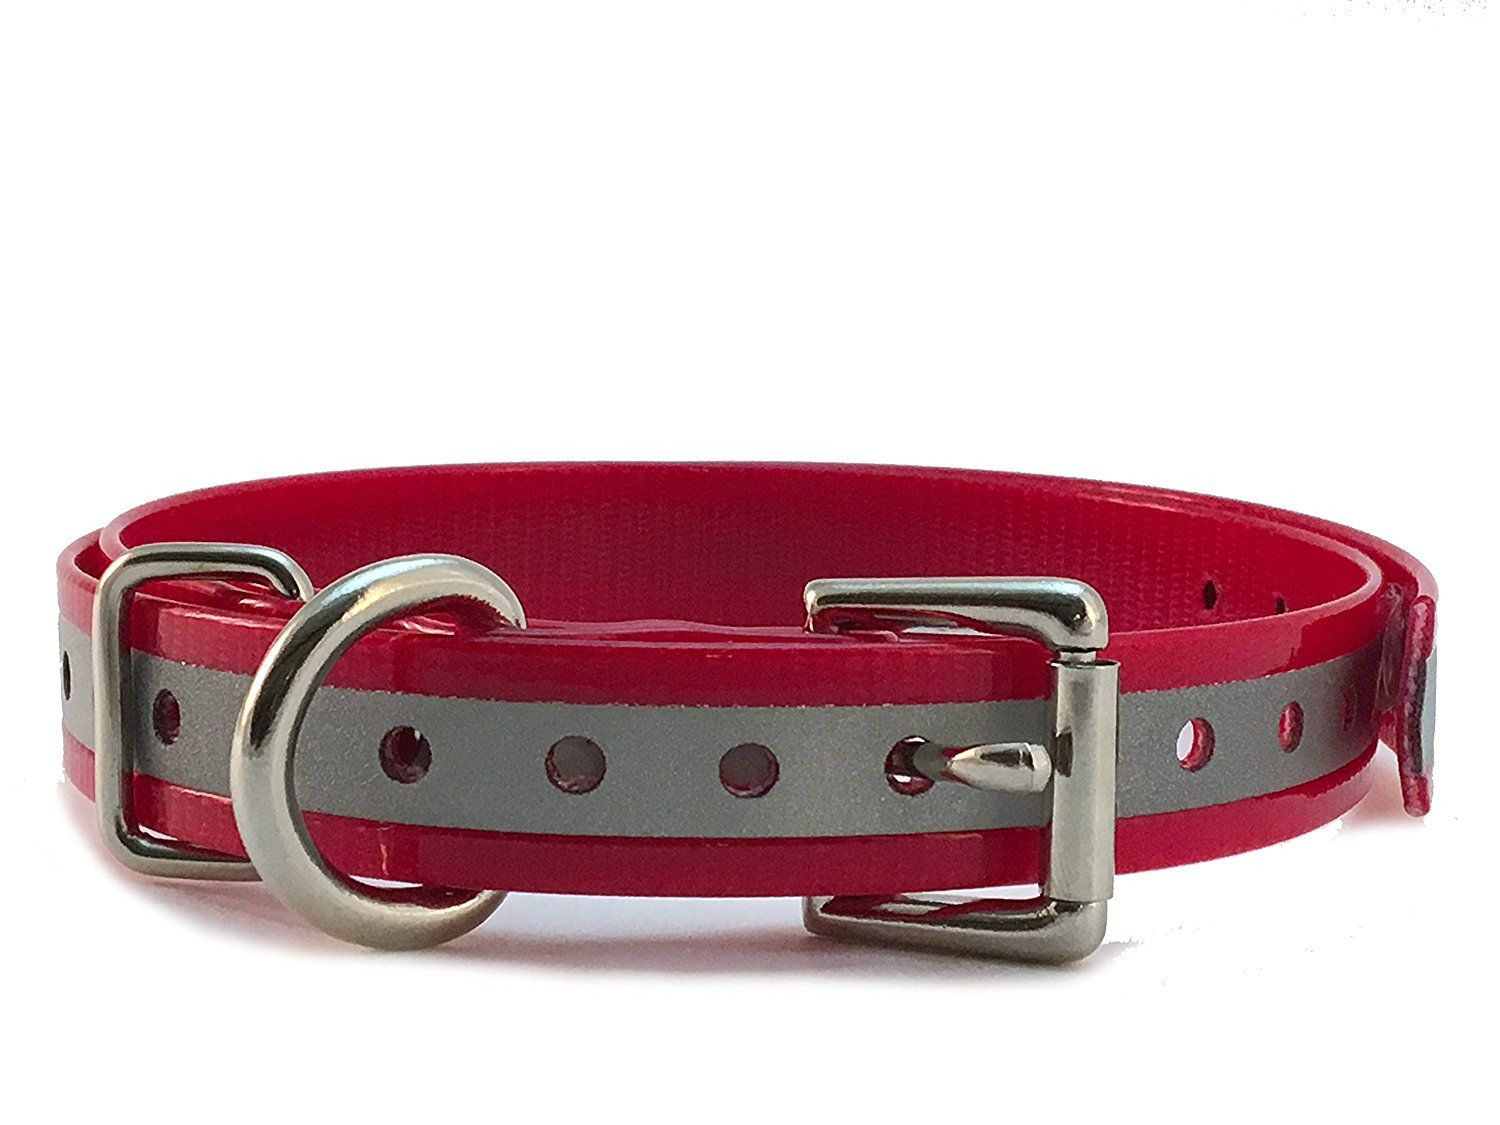 Sparky Petco 1 Roller Buckle High Flex Reflective Red Waterproof Dog Strap For Garmin Dogtra Petsafe Sportdog E Collar Petco Dog Accesories Dog Training Pads